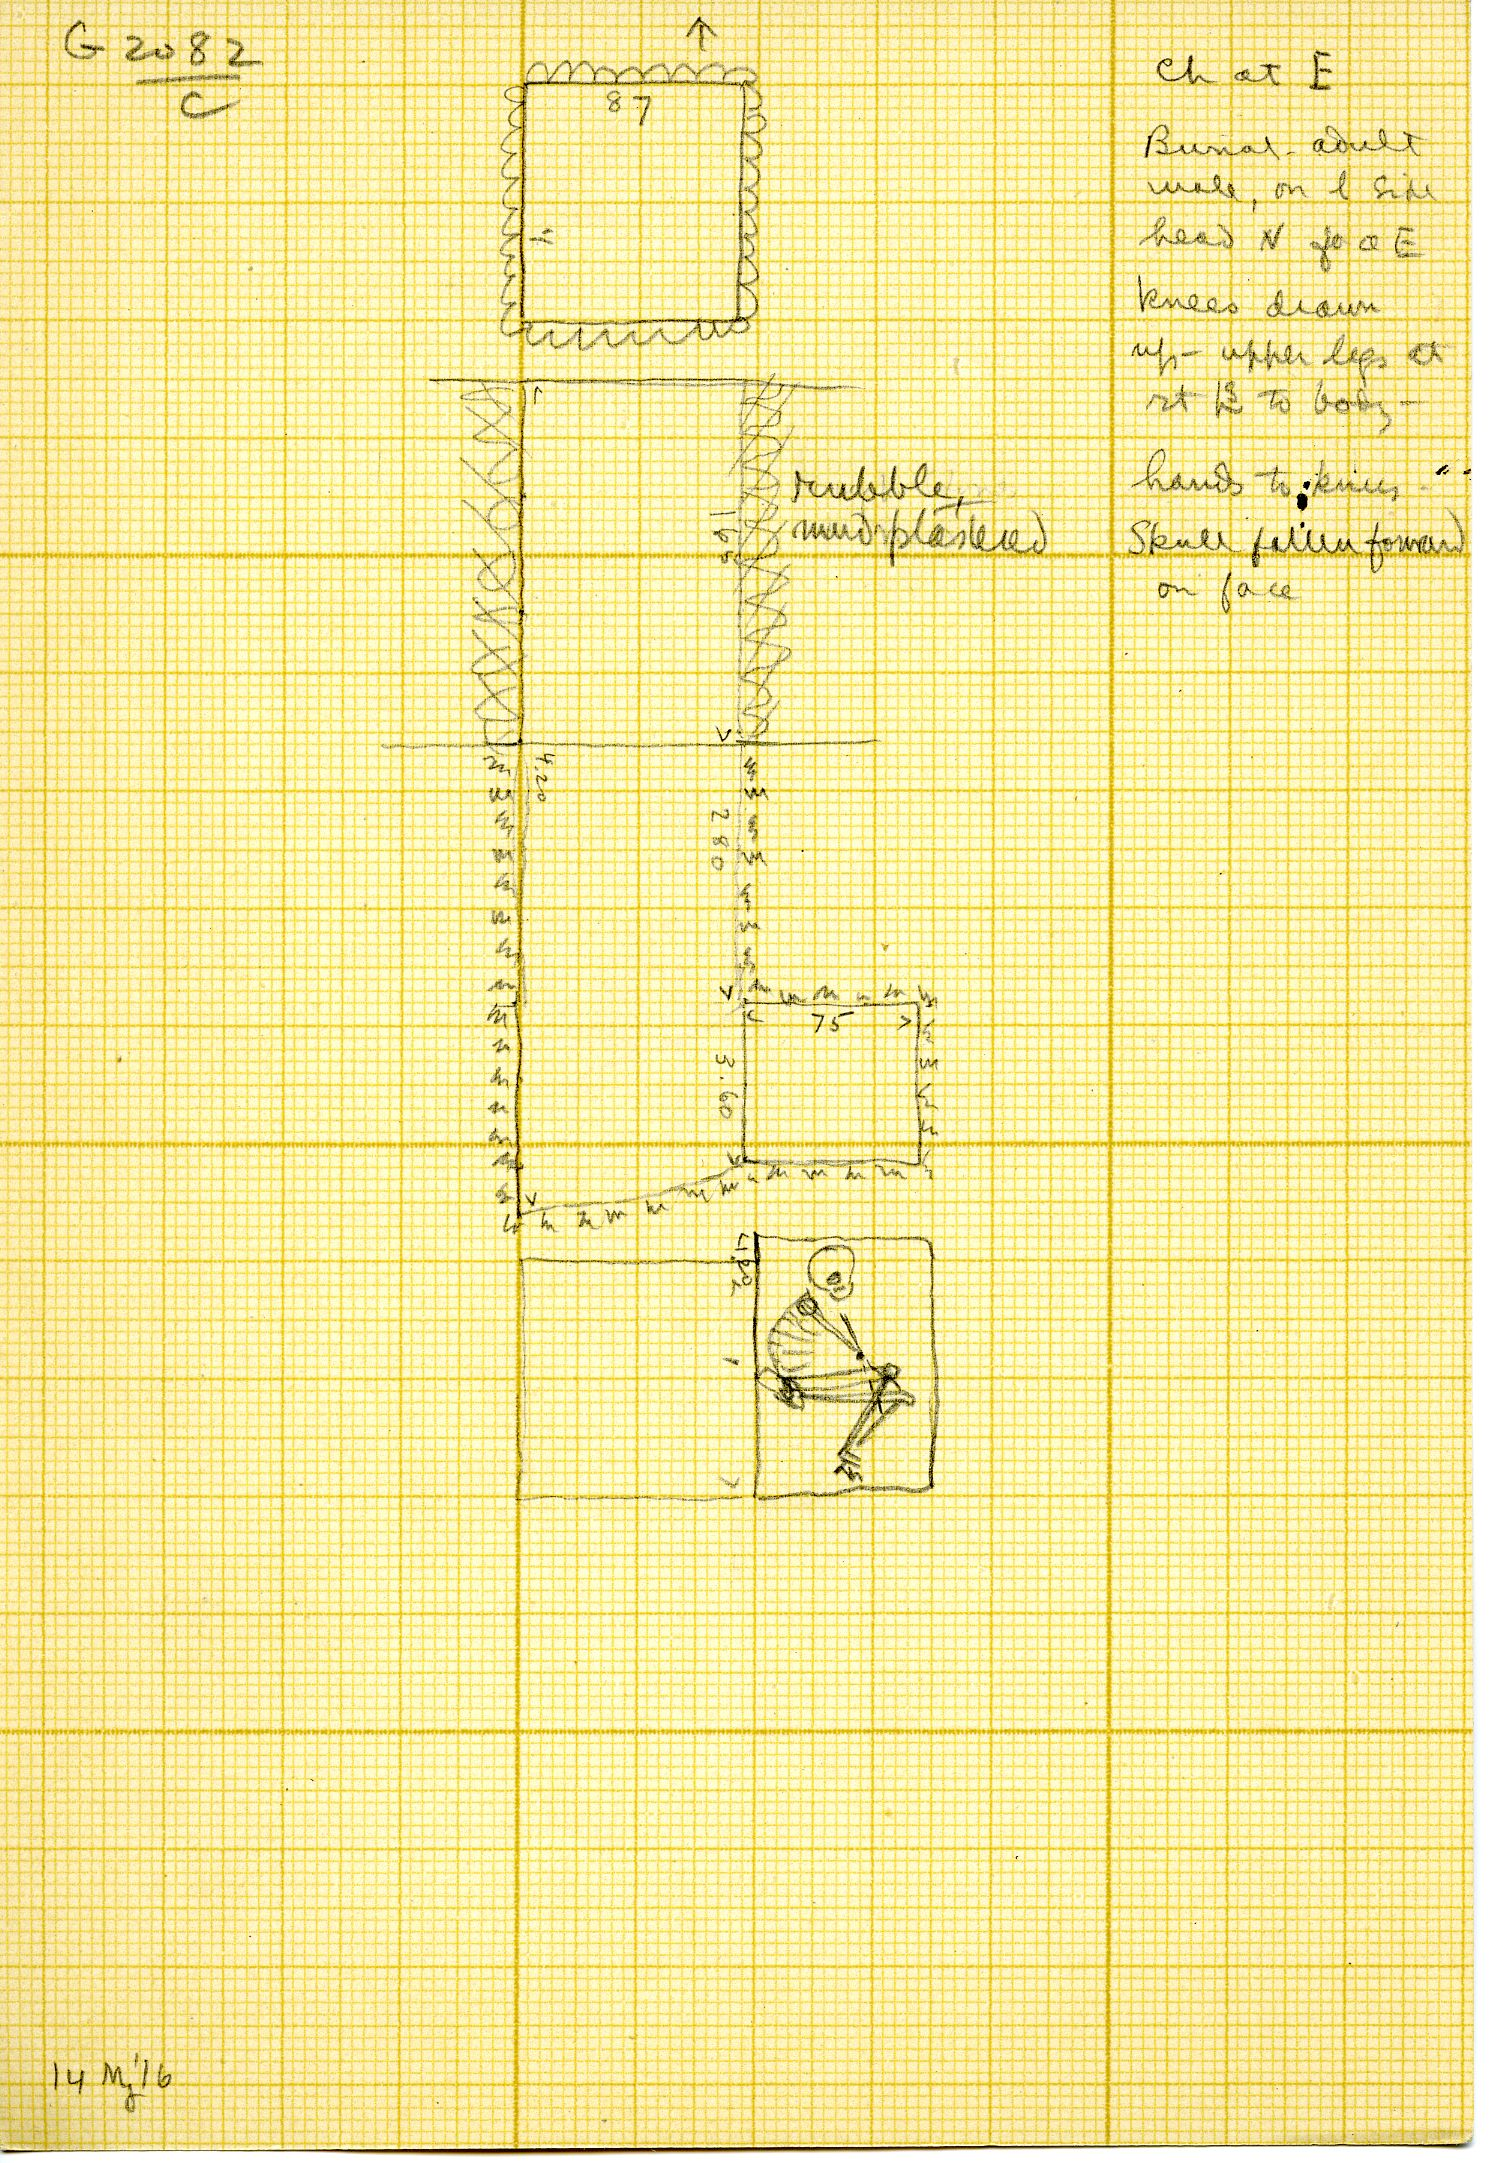 Maps and plans: G 3082, Shaft C